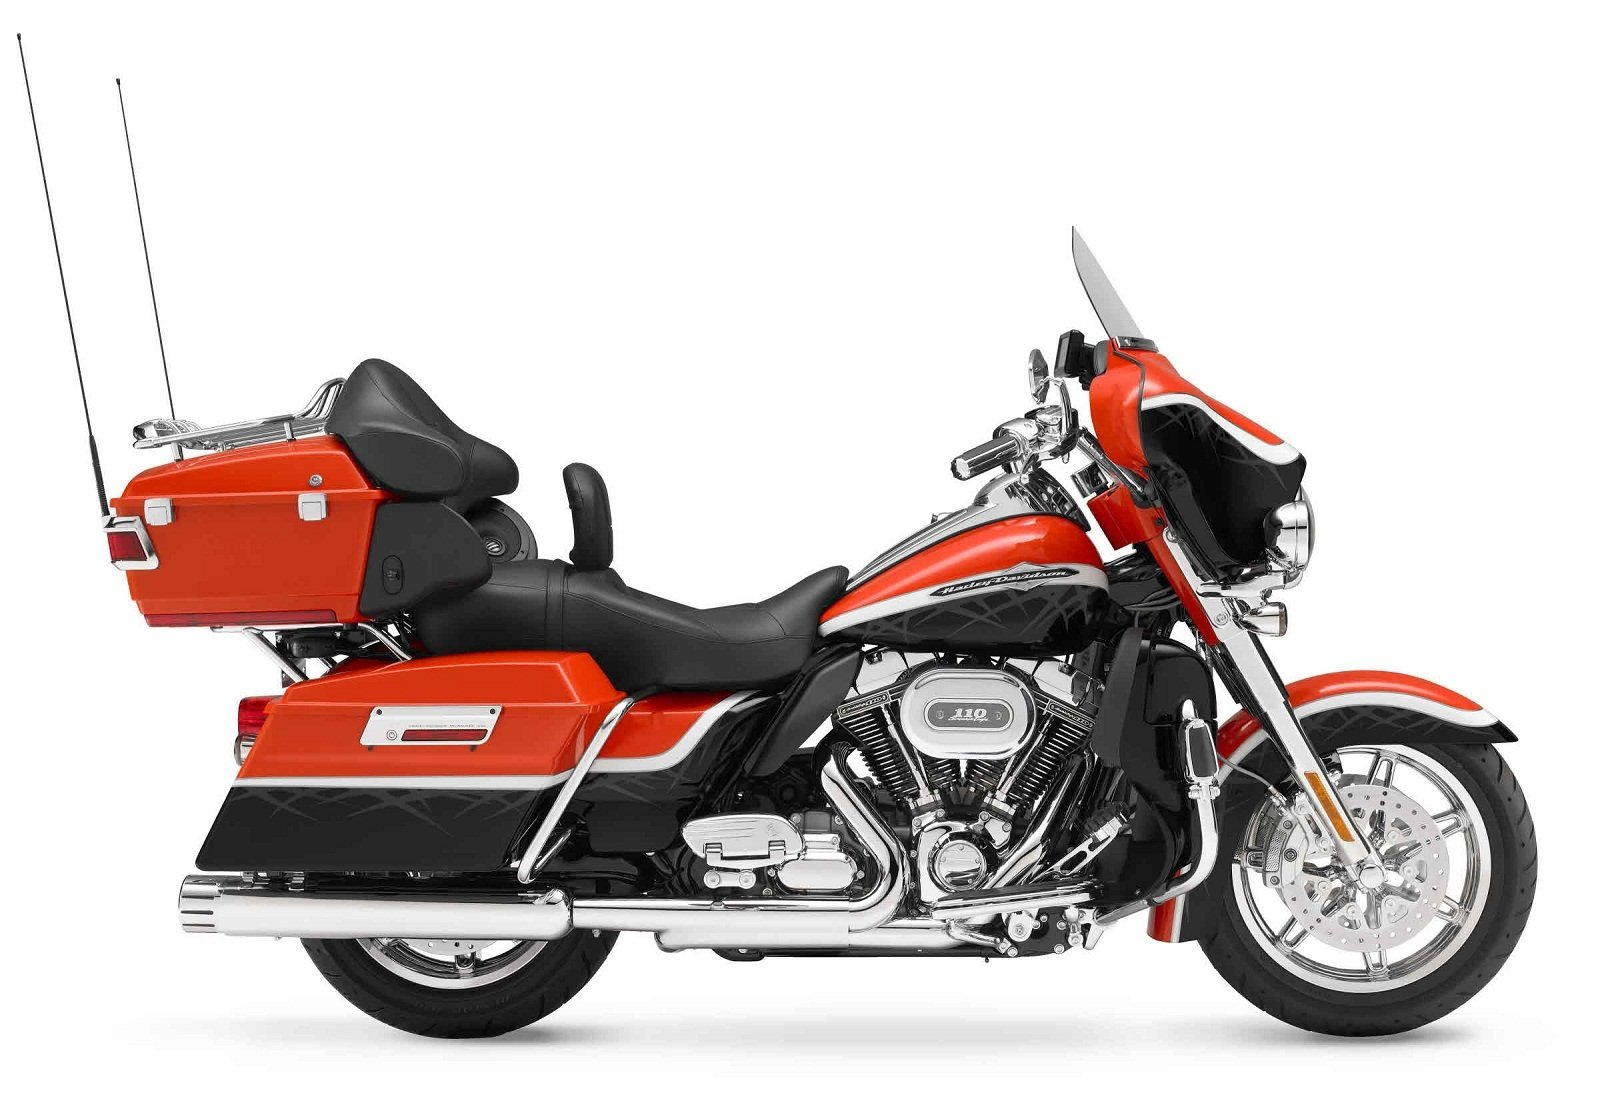 2012 harley davidson cvo ultra classic electra glide picture 434056 motorcycle review top. Black Bedroom Furniture Sets. Home Design Ideas